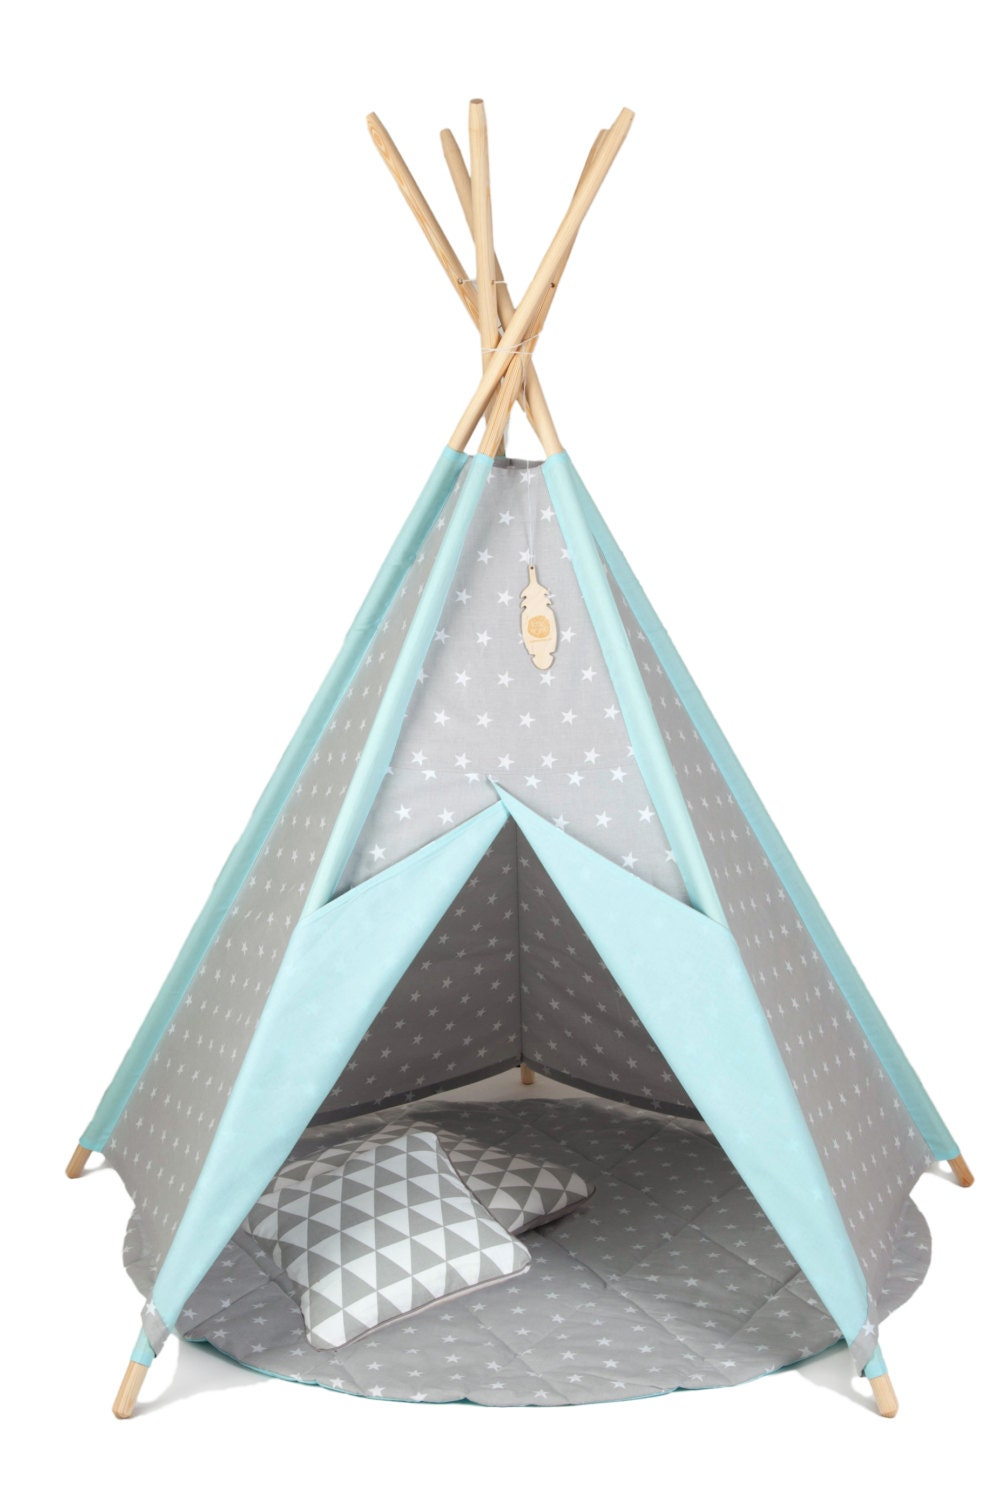 teepee set teepee with 5 poles plywood by teepeelittlenomad. Black Bedroom Furniture Sets. Home Design Ideas